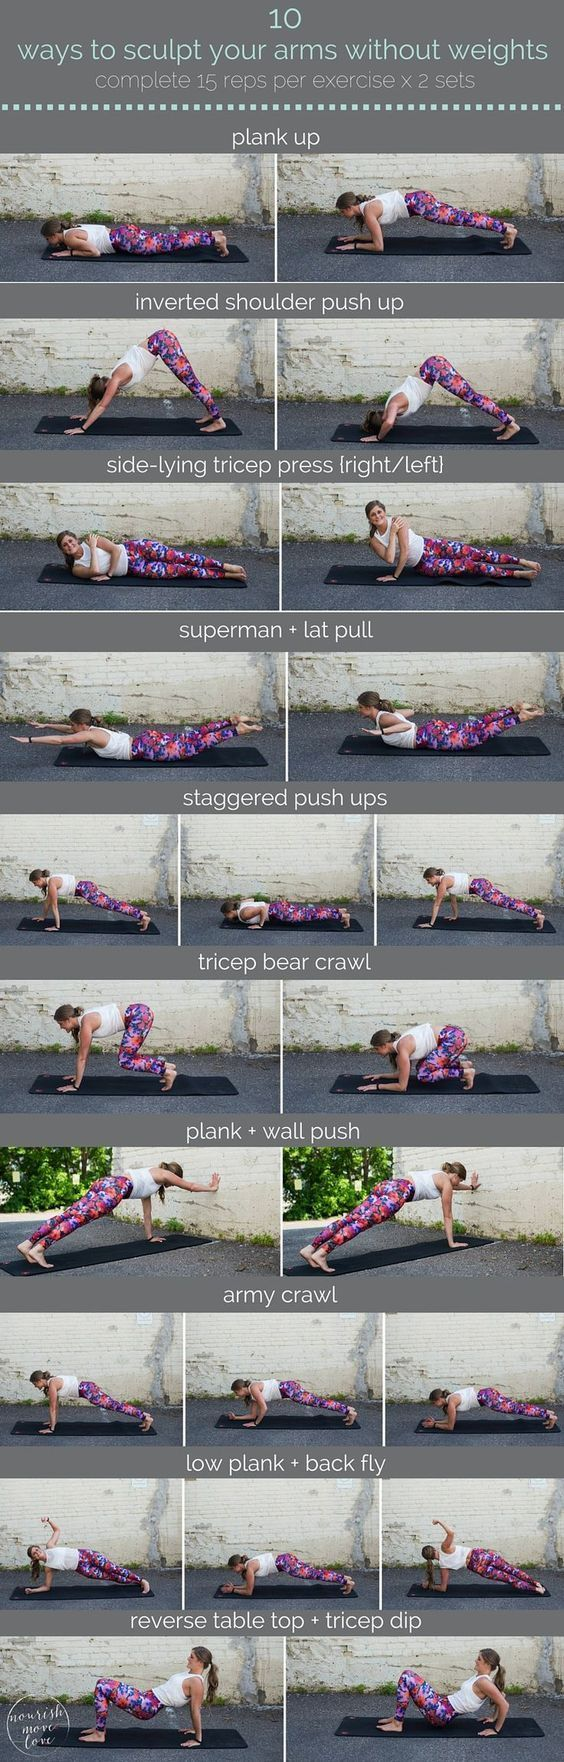 DownDog Yoga Poses for Fun & Fitness: 10 ways to sculpt your arms without weights